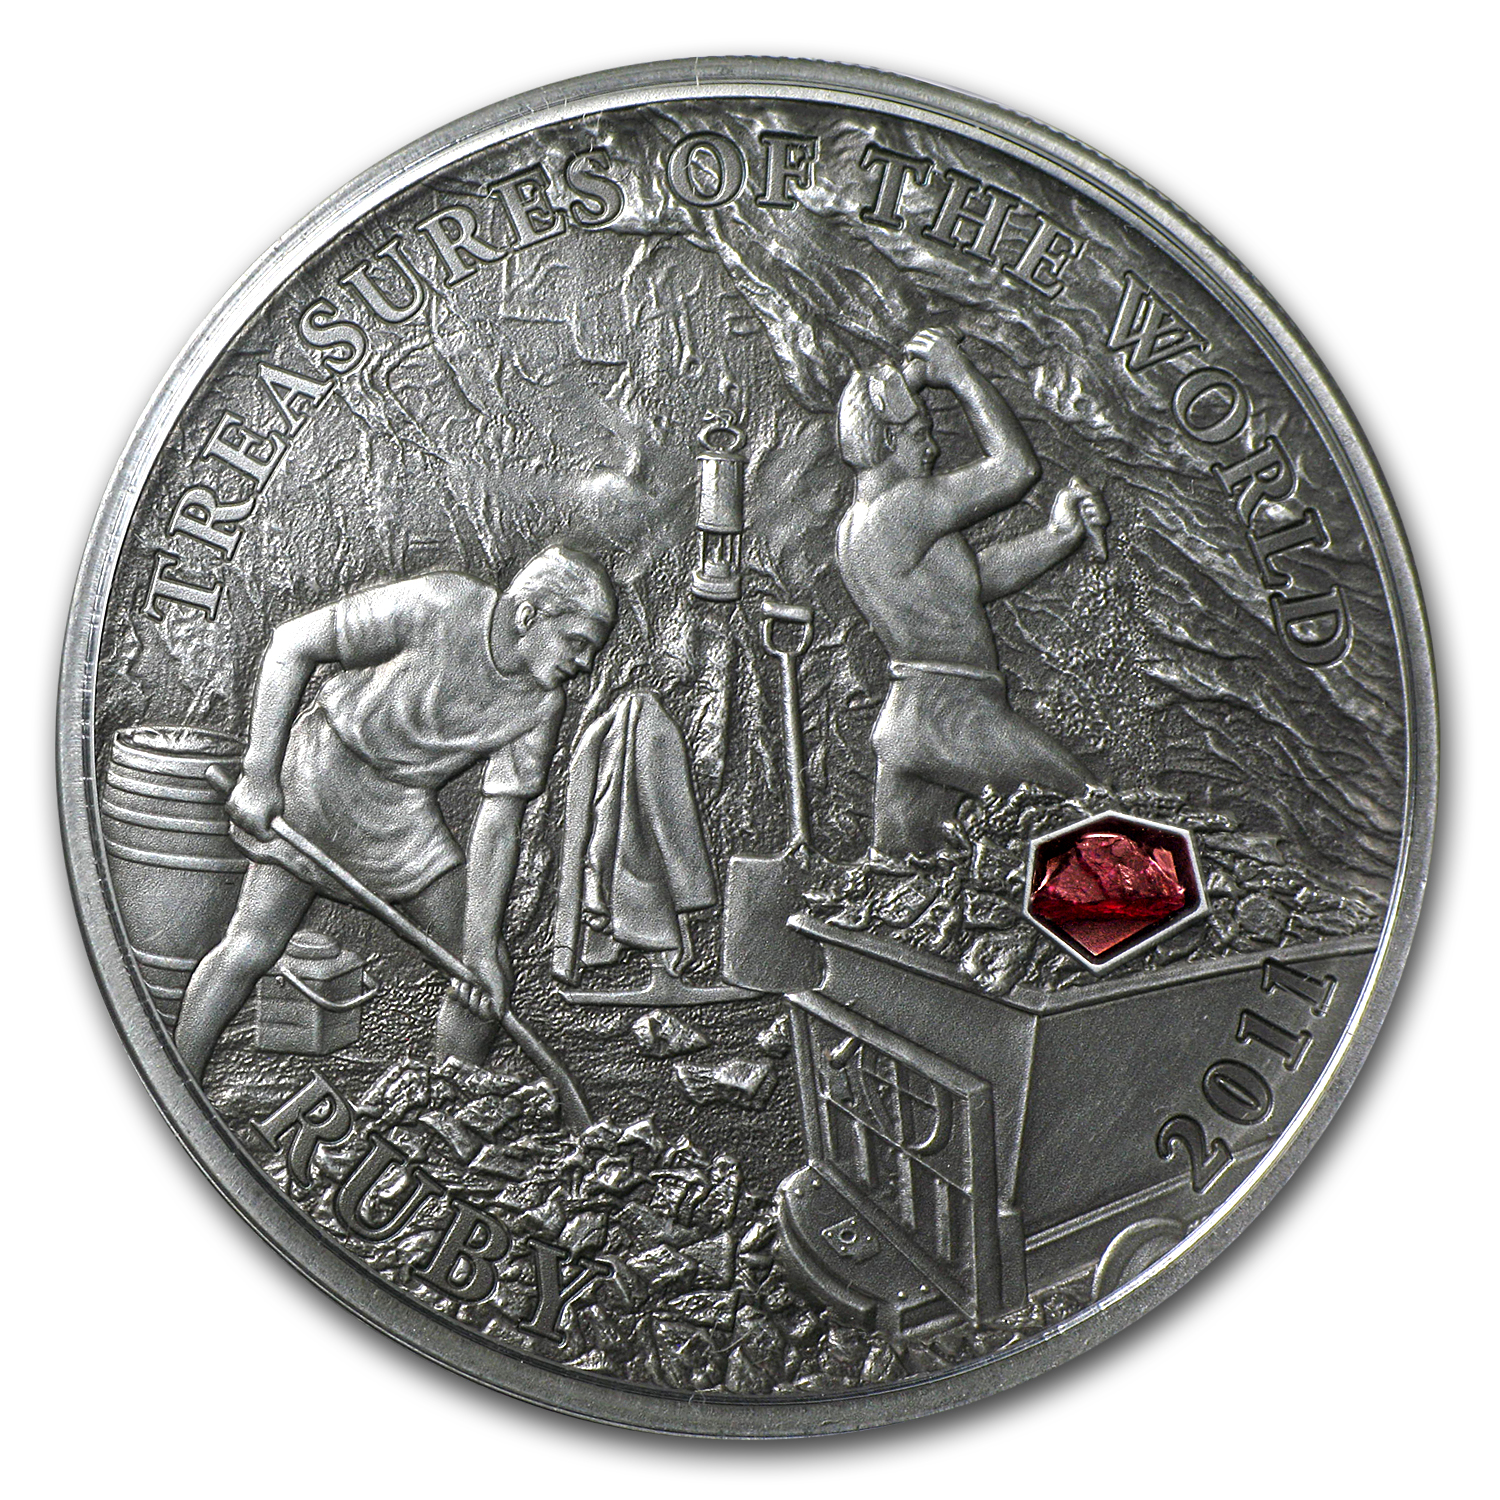 Palau 2011 Silver Proof $5 Treasures of the World - Ruby